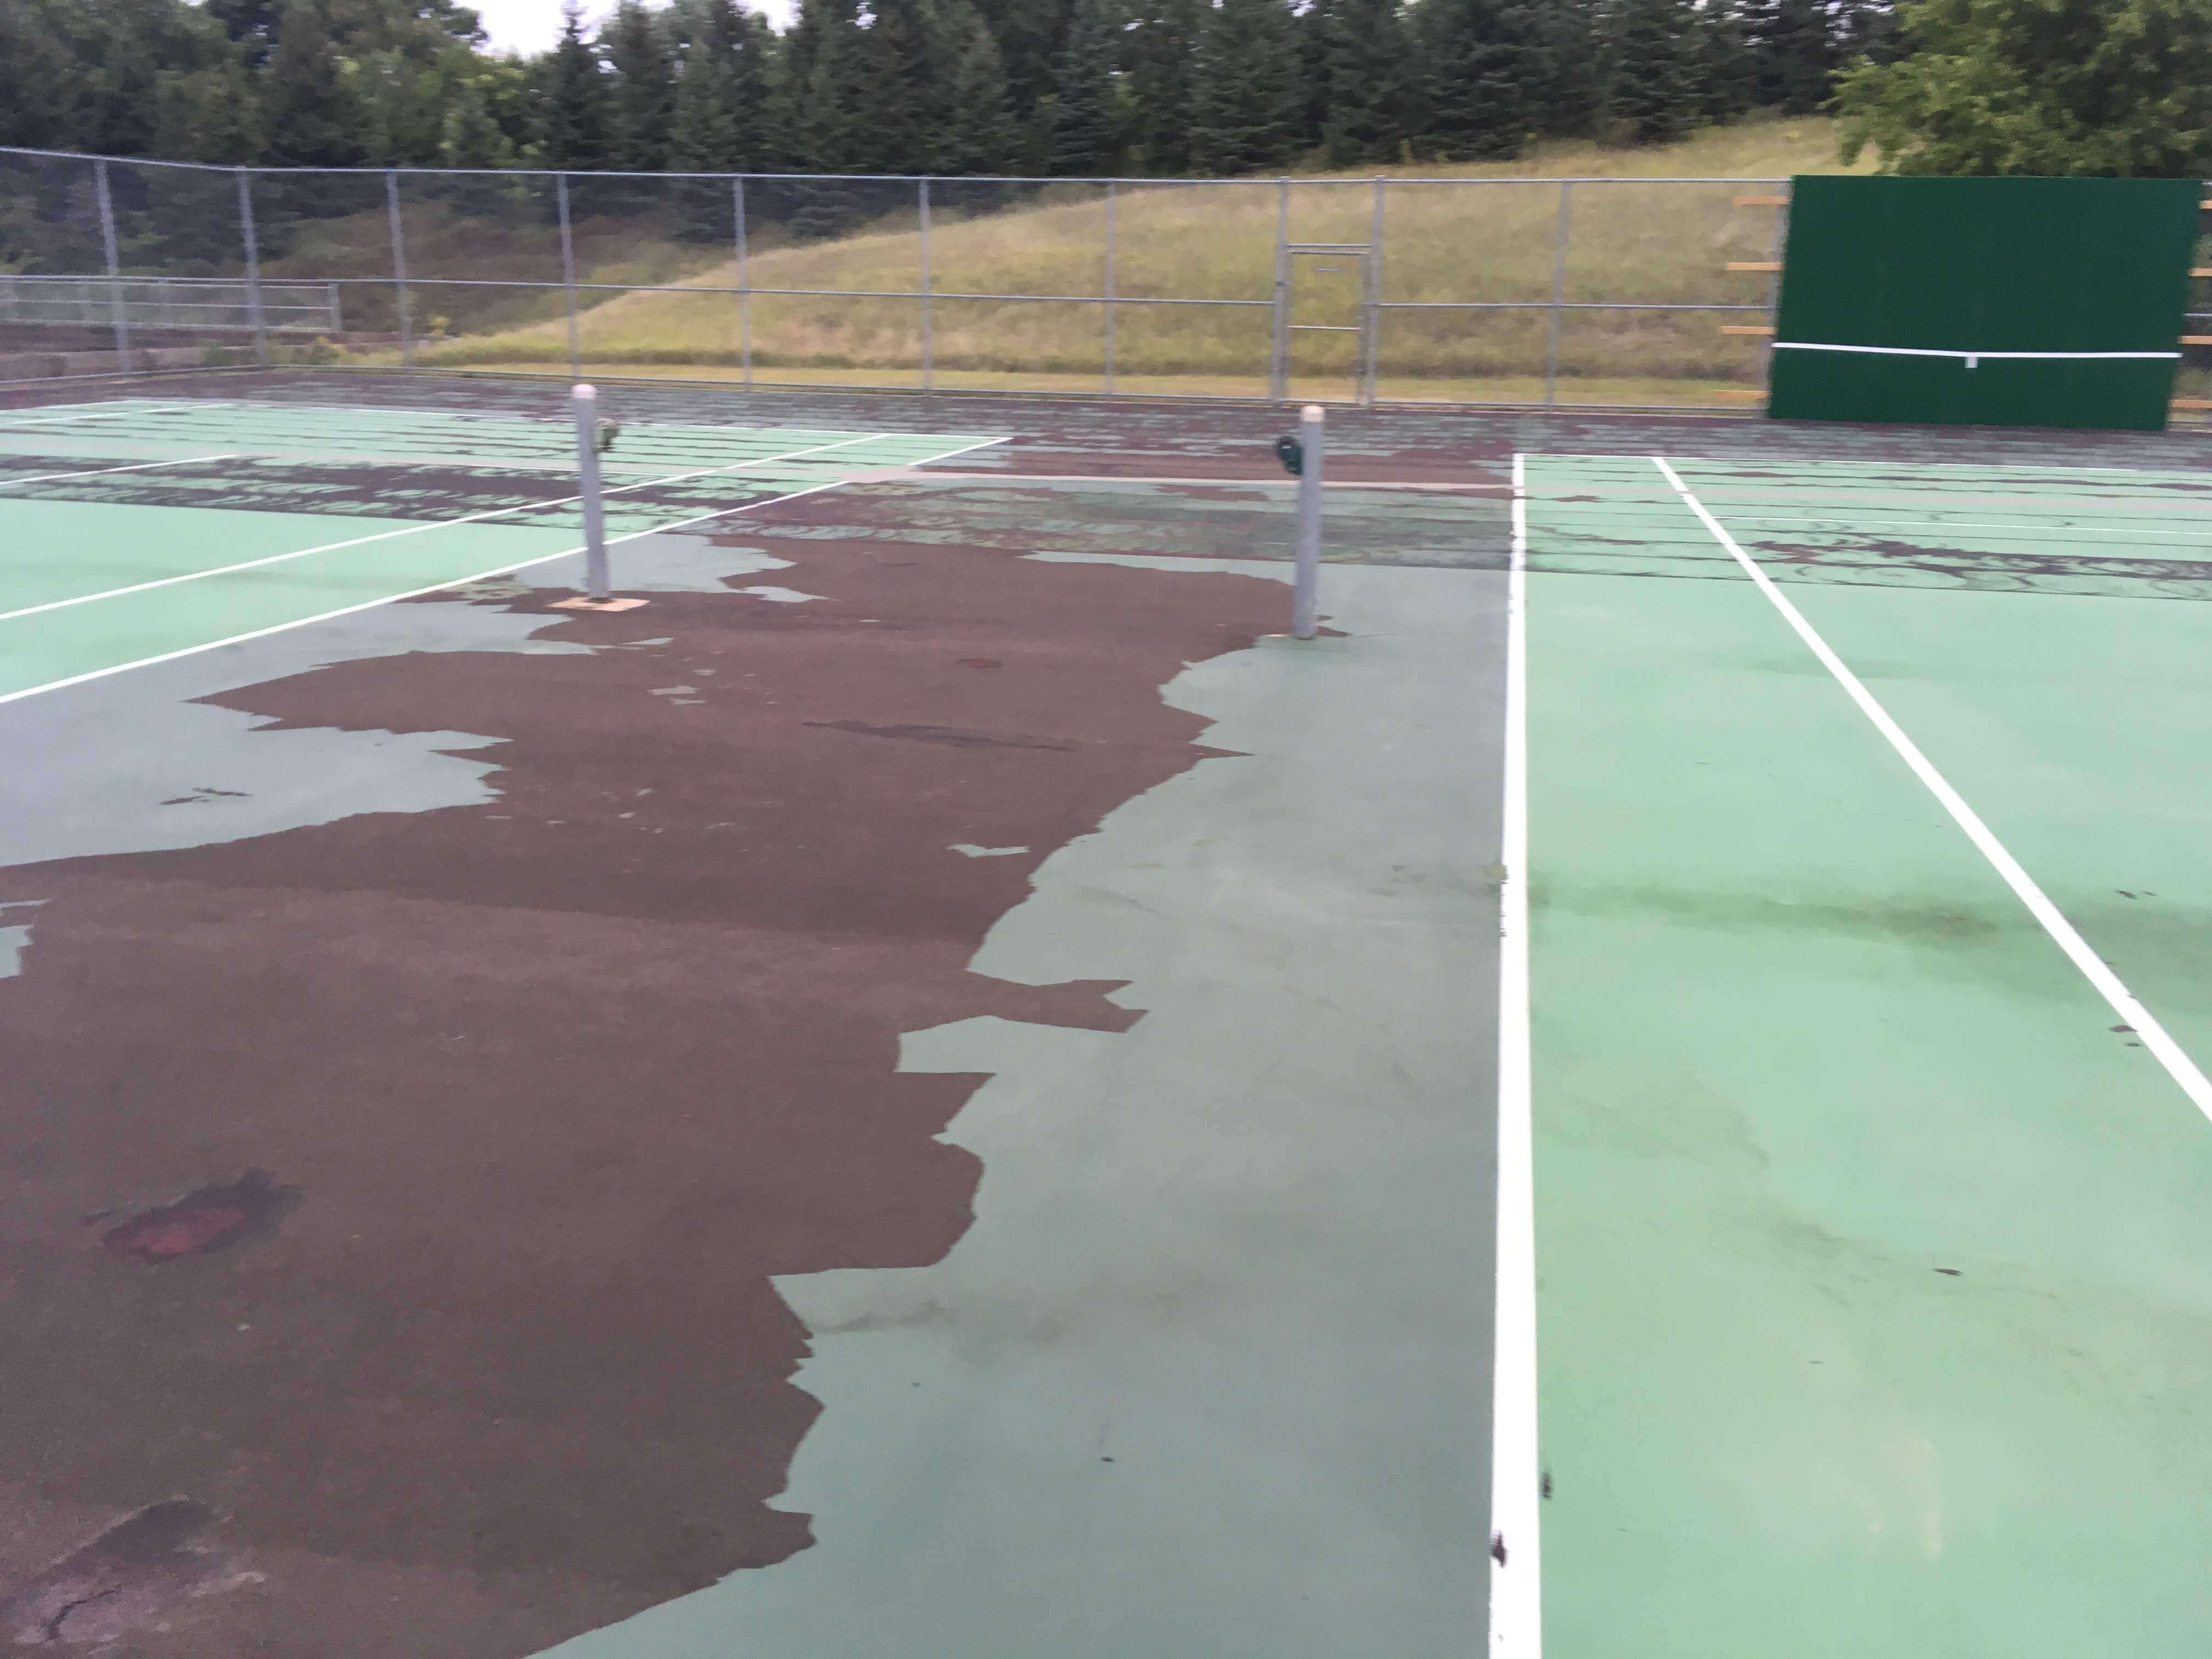 Tennis court BEFORE completed resurfacing and crack repair by C & H Sport Surfaces, Inc